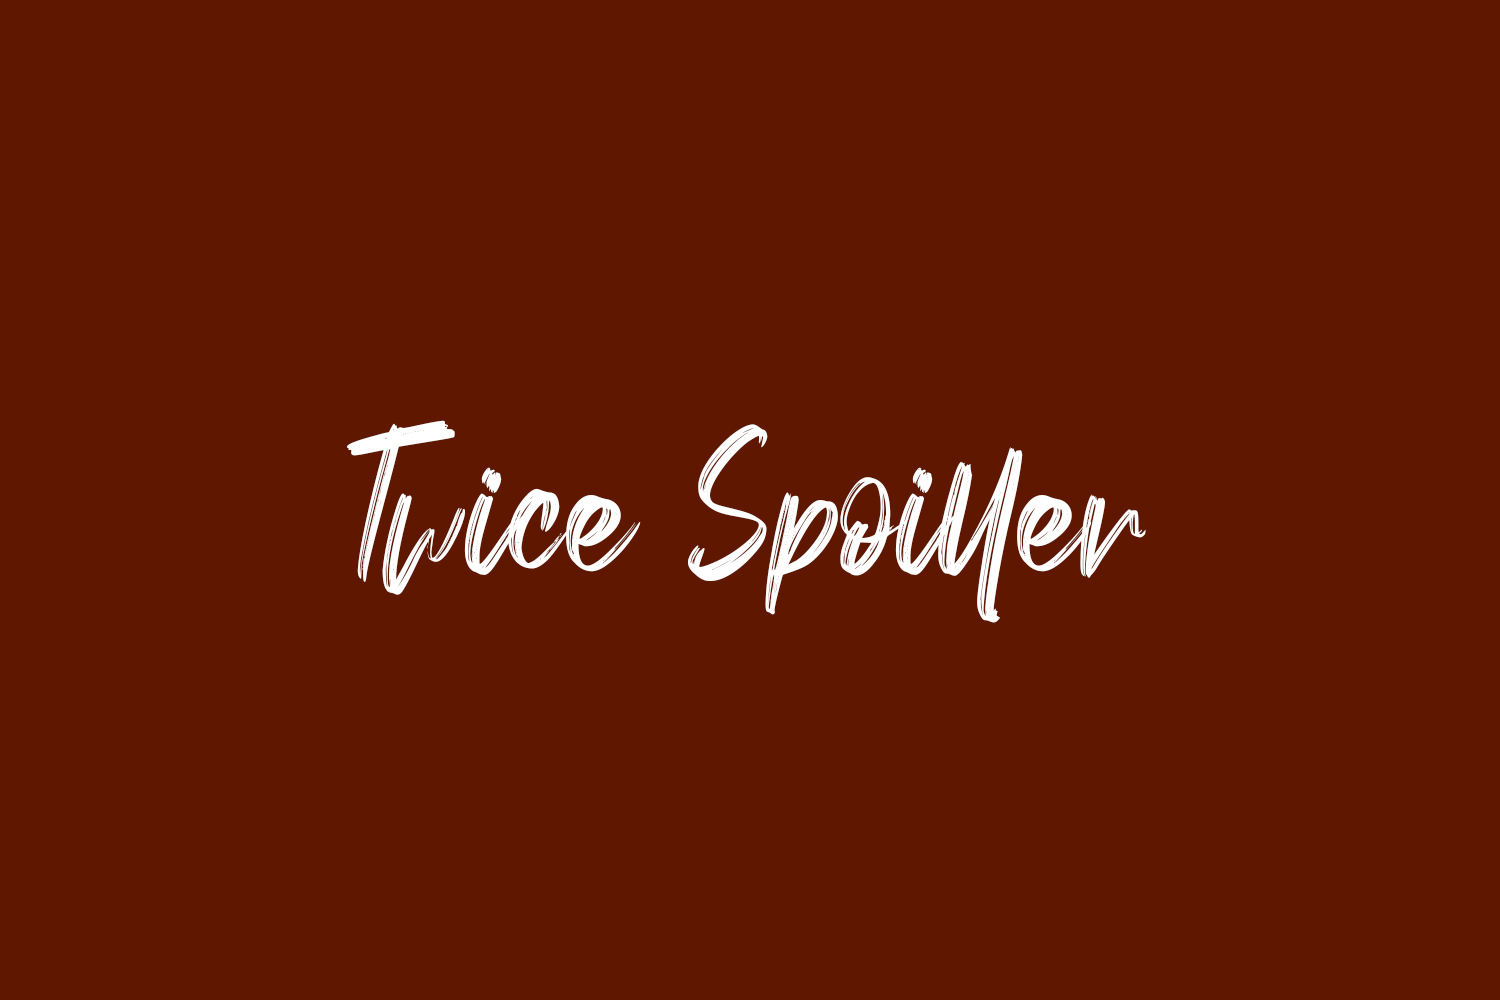 Twice Spoiller Free Font